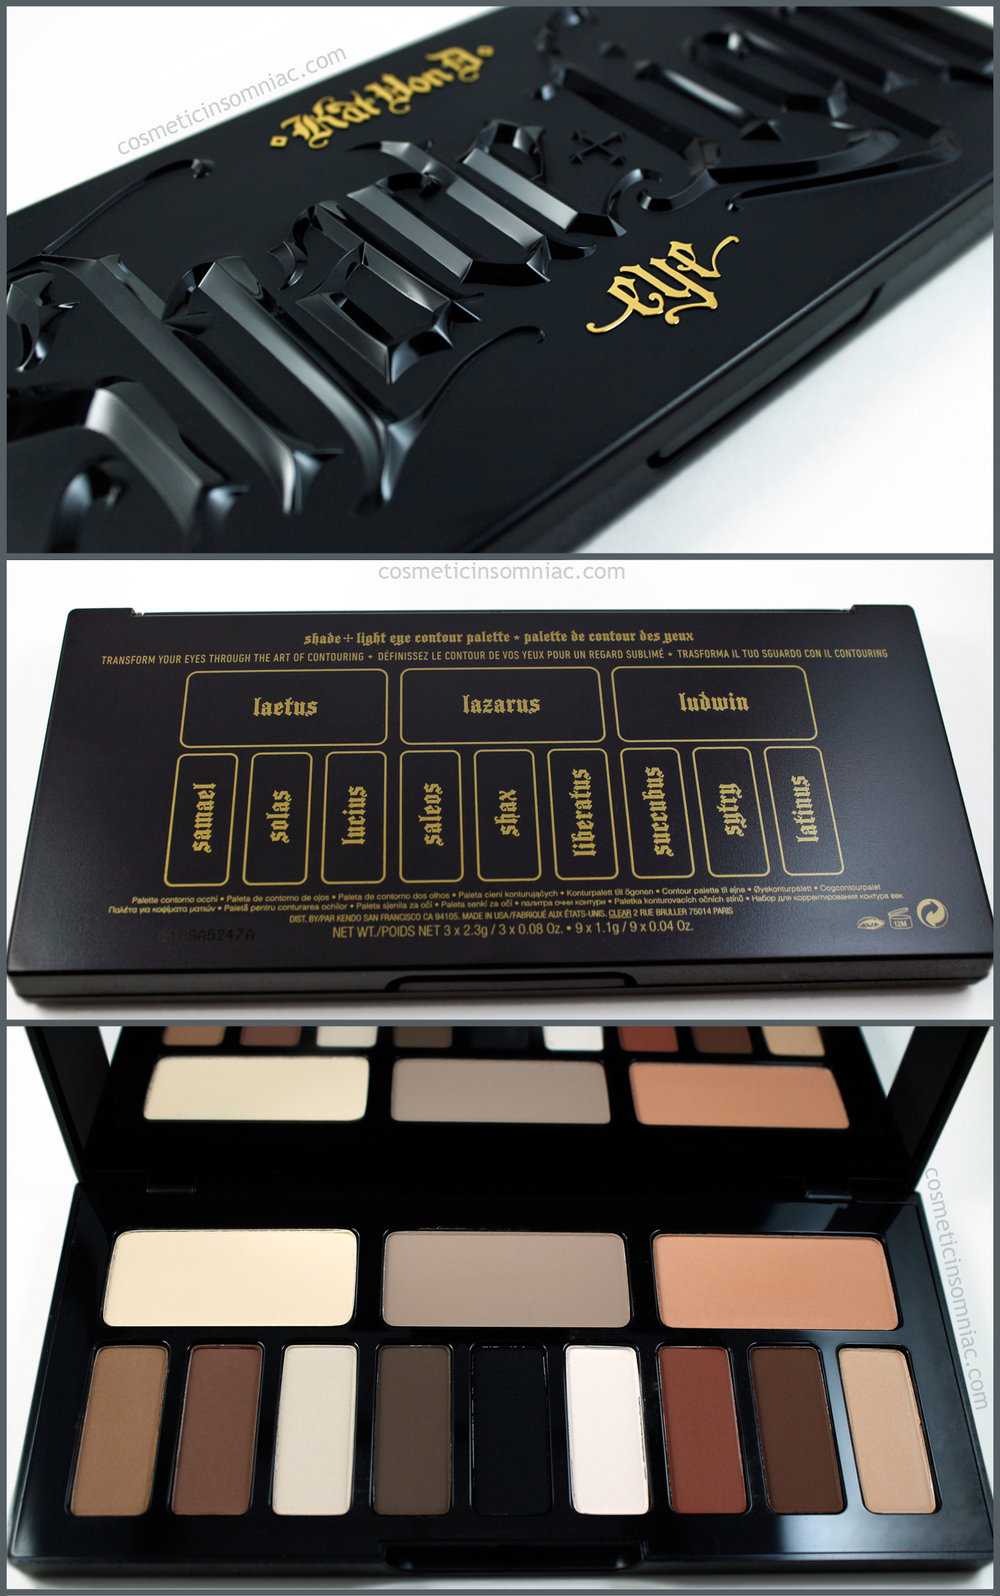 Kat Von D - Shade + Light Obsession Collector's Edition Contour Set  Shade + Light Eye Contour Palette